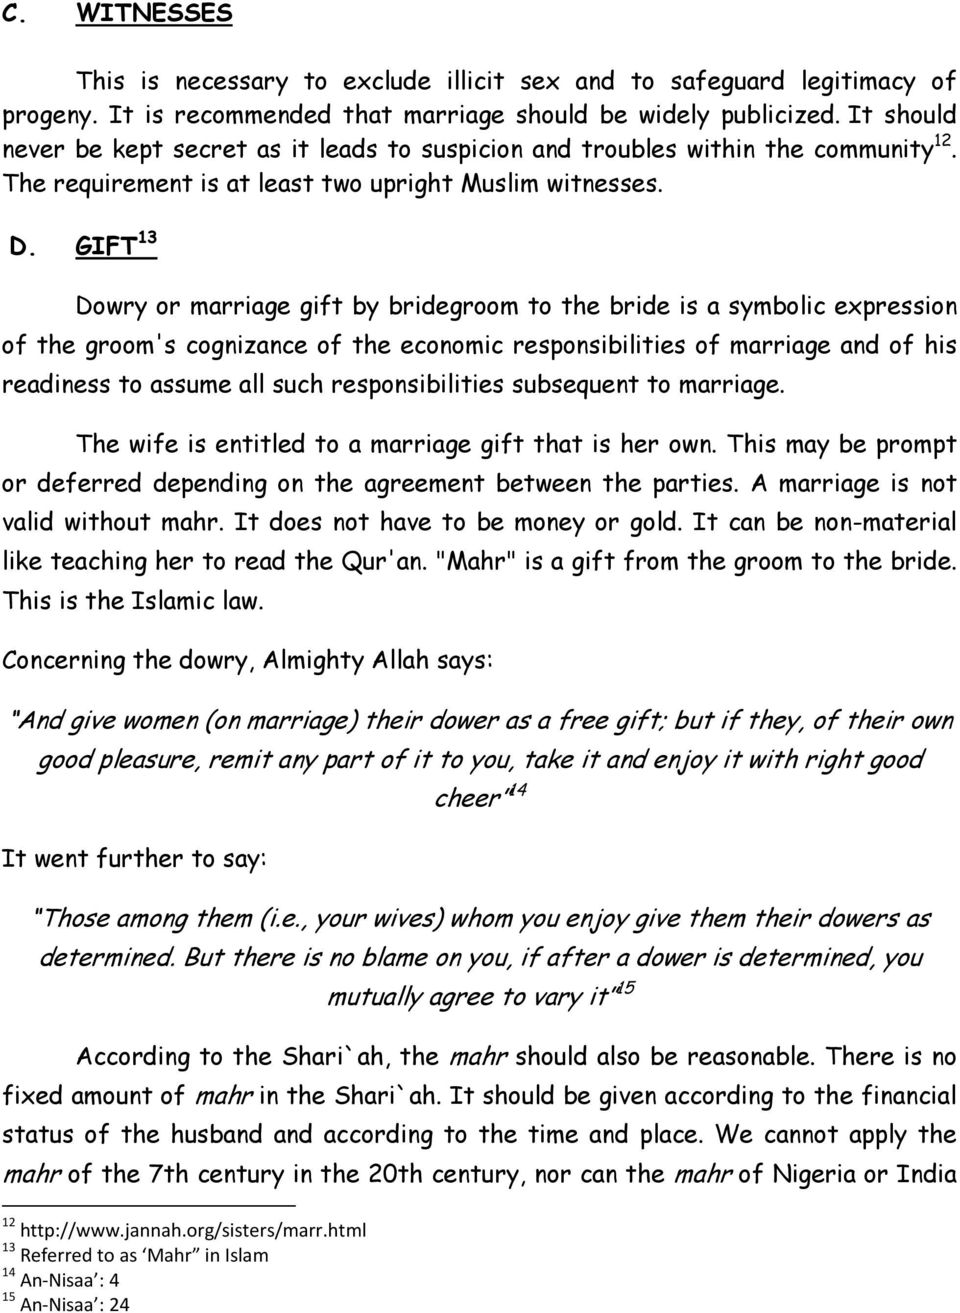 Requirements Of A Valid Islamic Marriage Vis Vis Requirements Of A